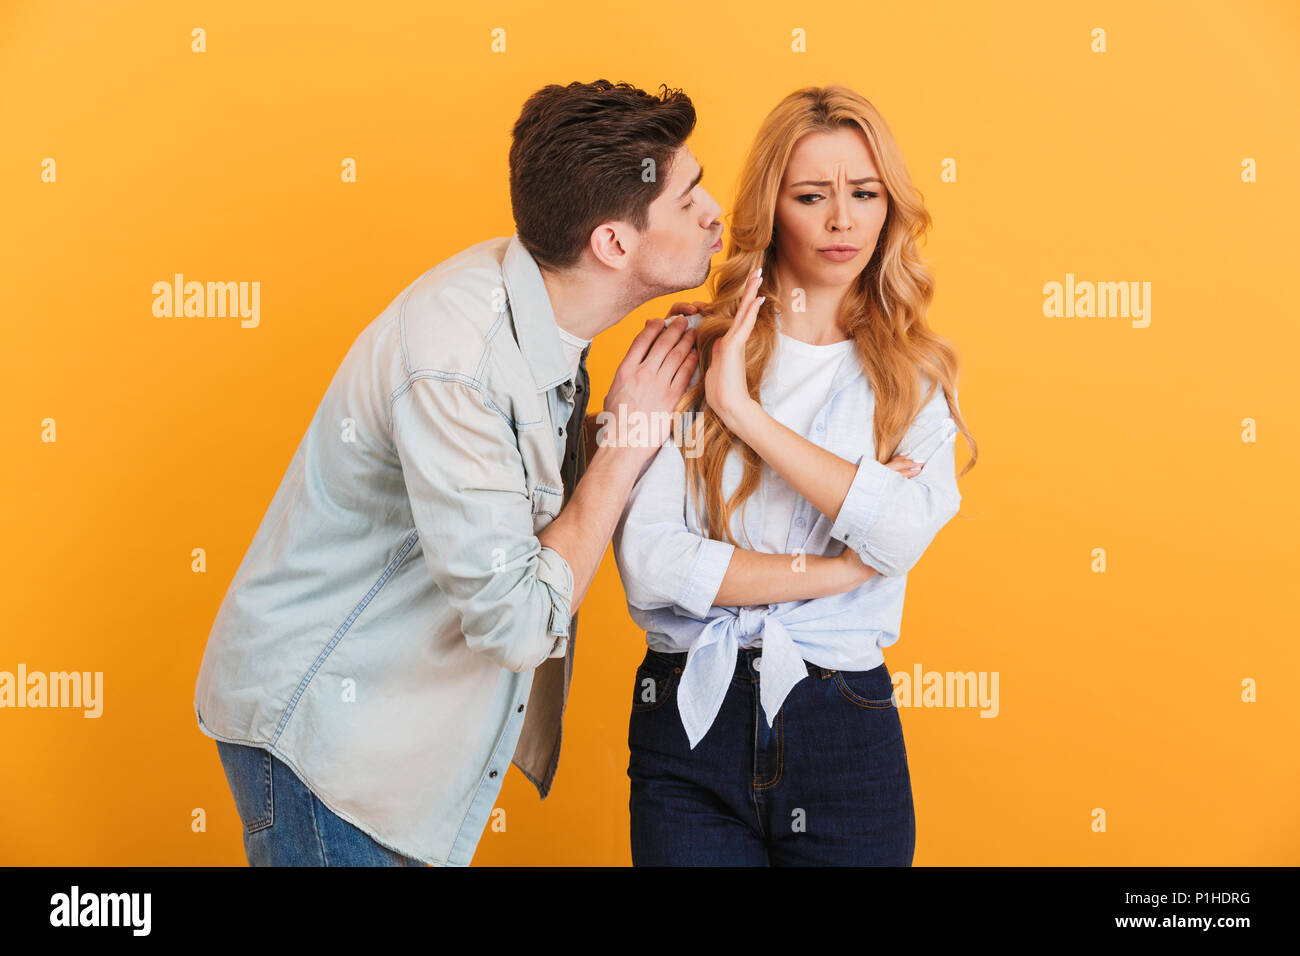 Portrait of outraged displeased woman gesturing to stop with hand while man trying to kiss her isolated over yellow background - Stock Image